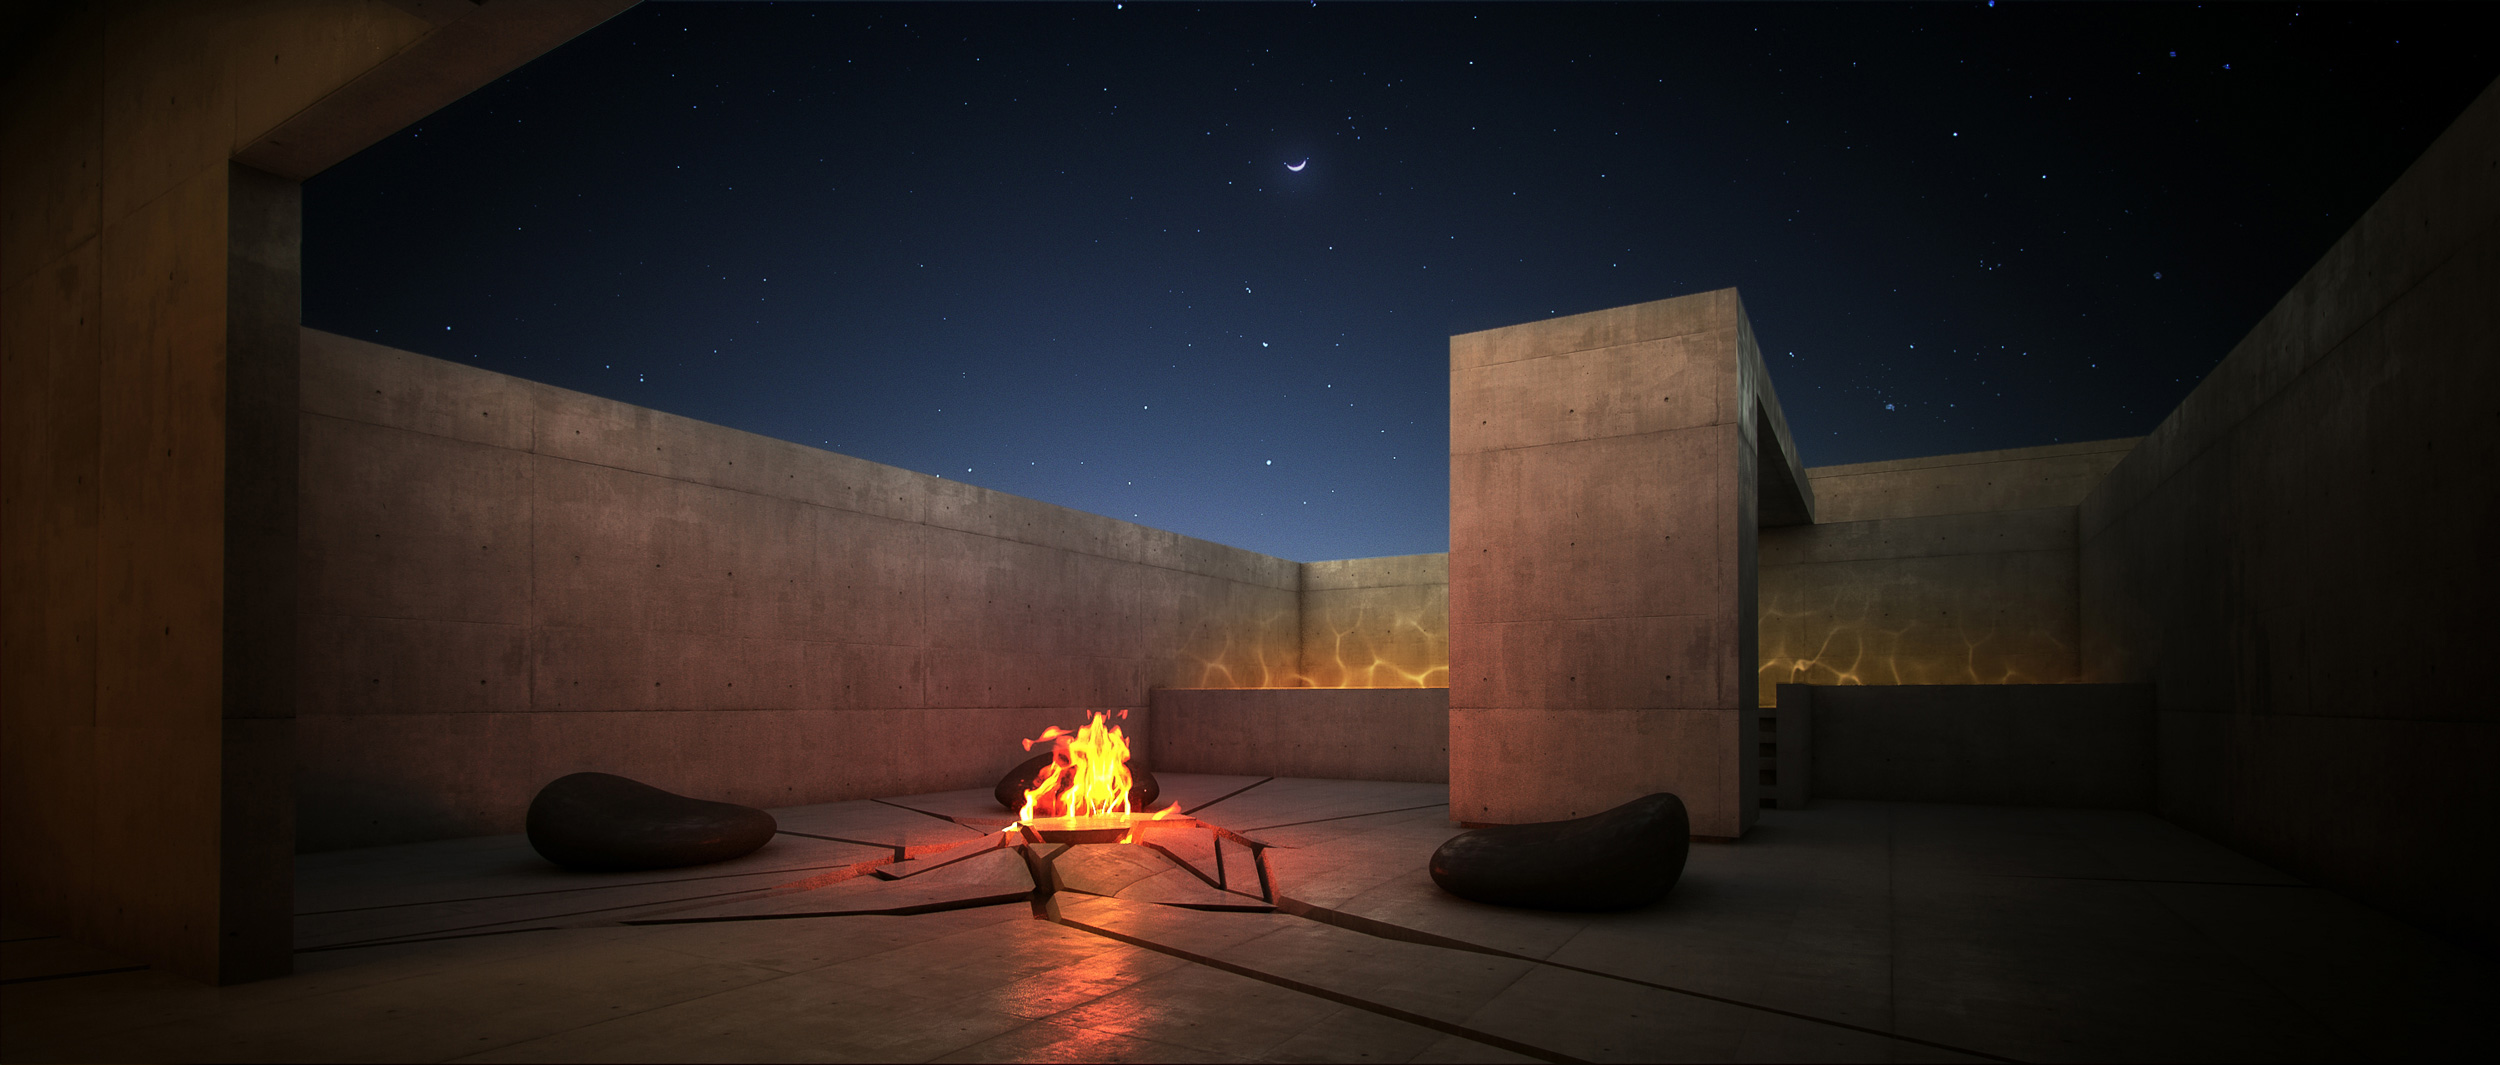 casaplutonia-resort-joshua-tree-archillusion-design-fire-courtyard.jpg